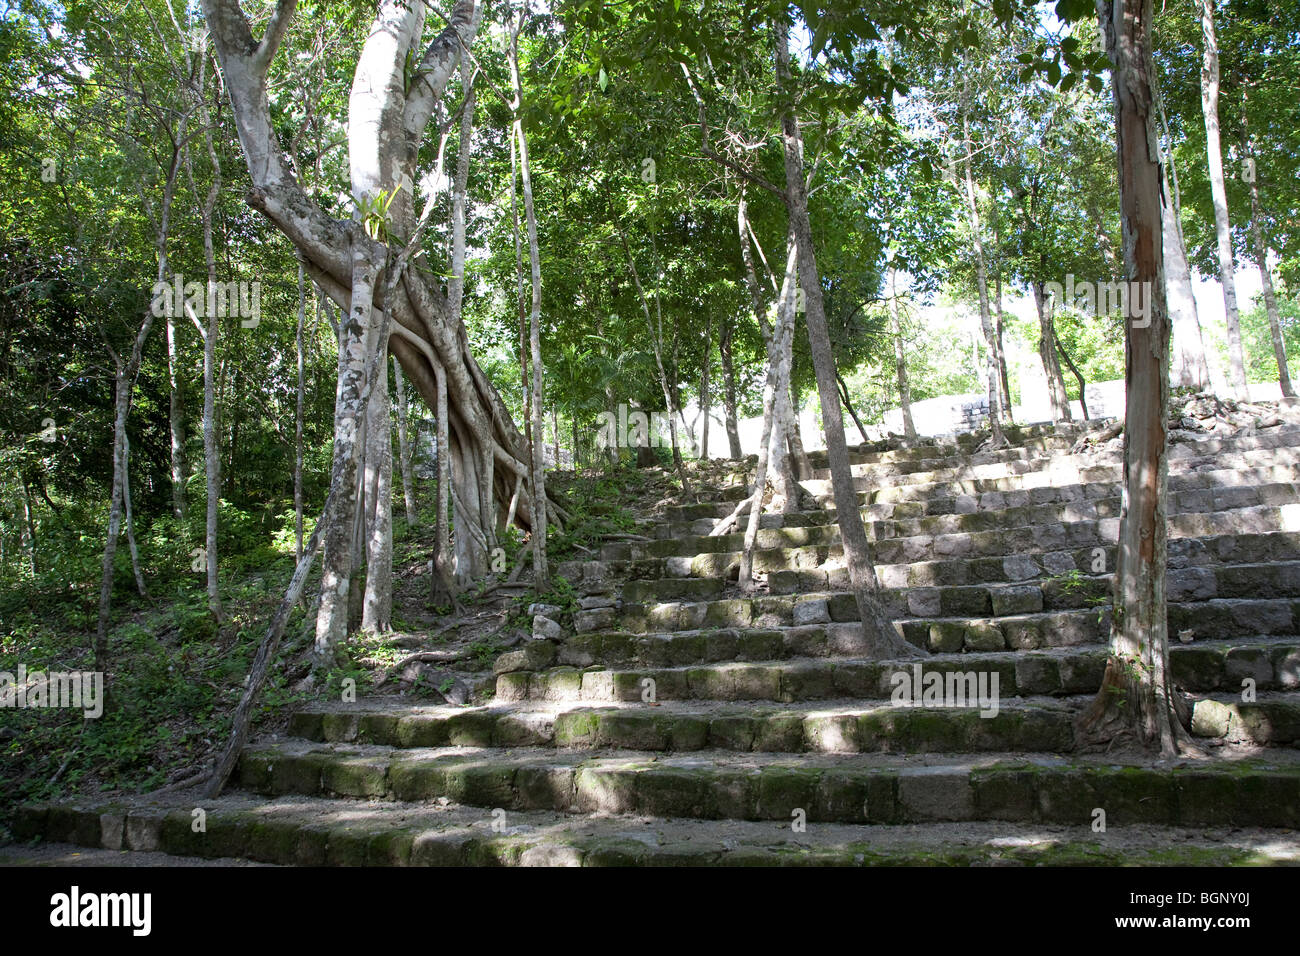 Calakmul Maya Ruins archaeology site, Campeche Mexico. - Stock Image